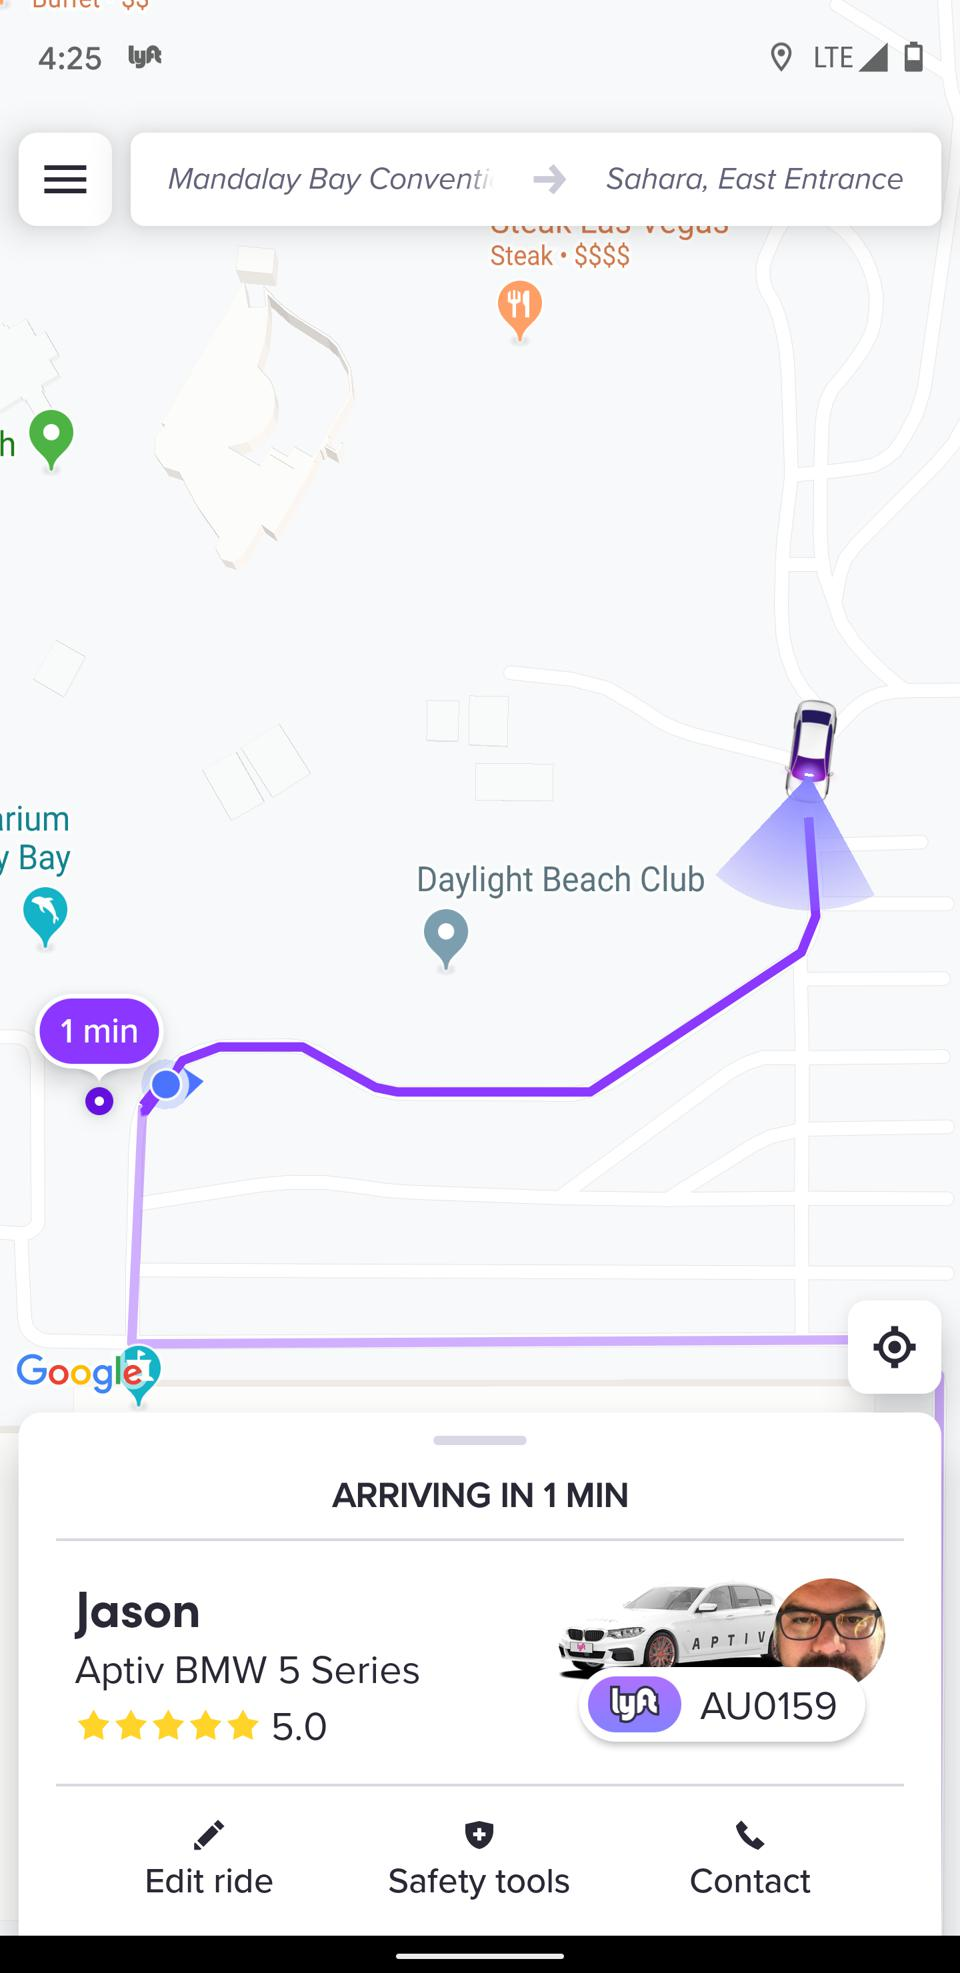 Screen shot from Lyft app requesting a self-driving ride